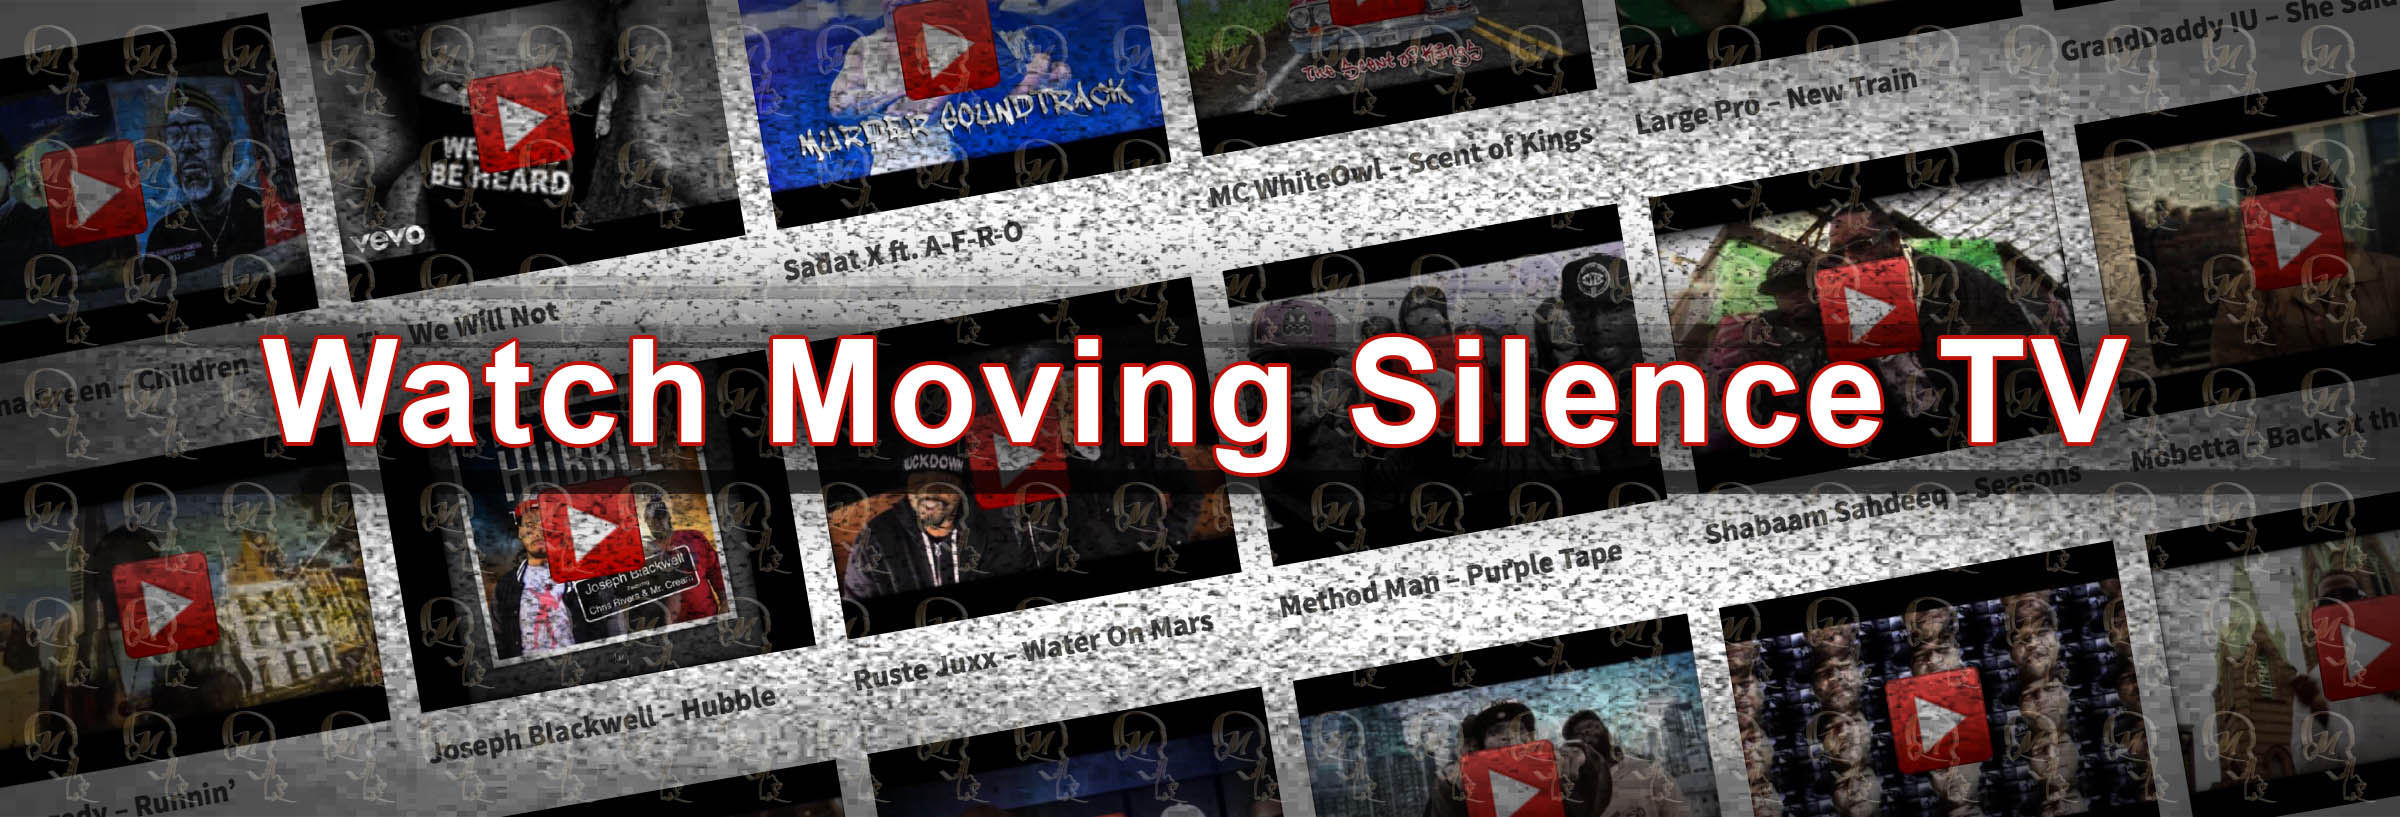 Watch Moving Silence TV